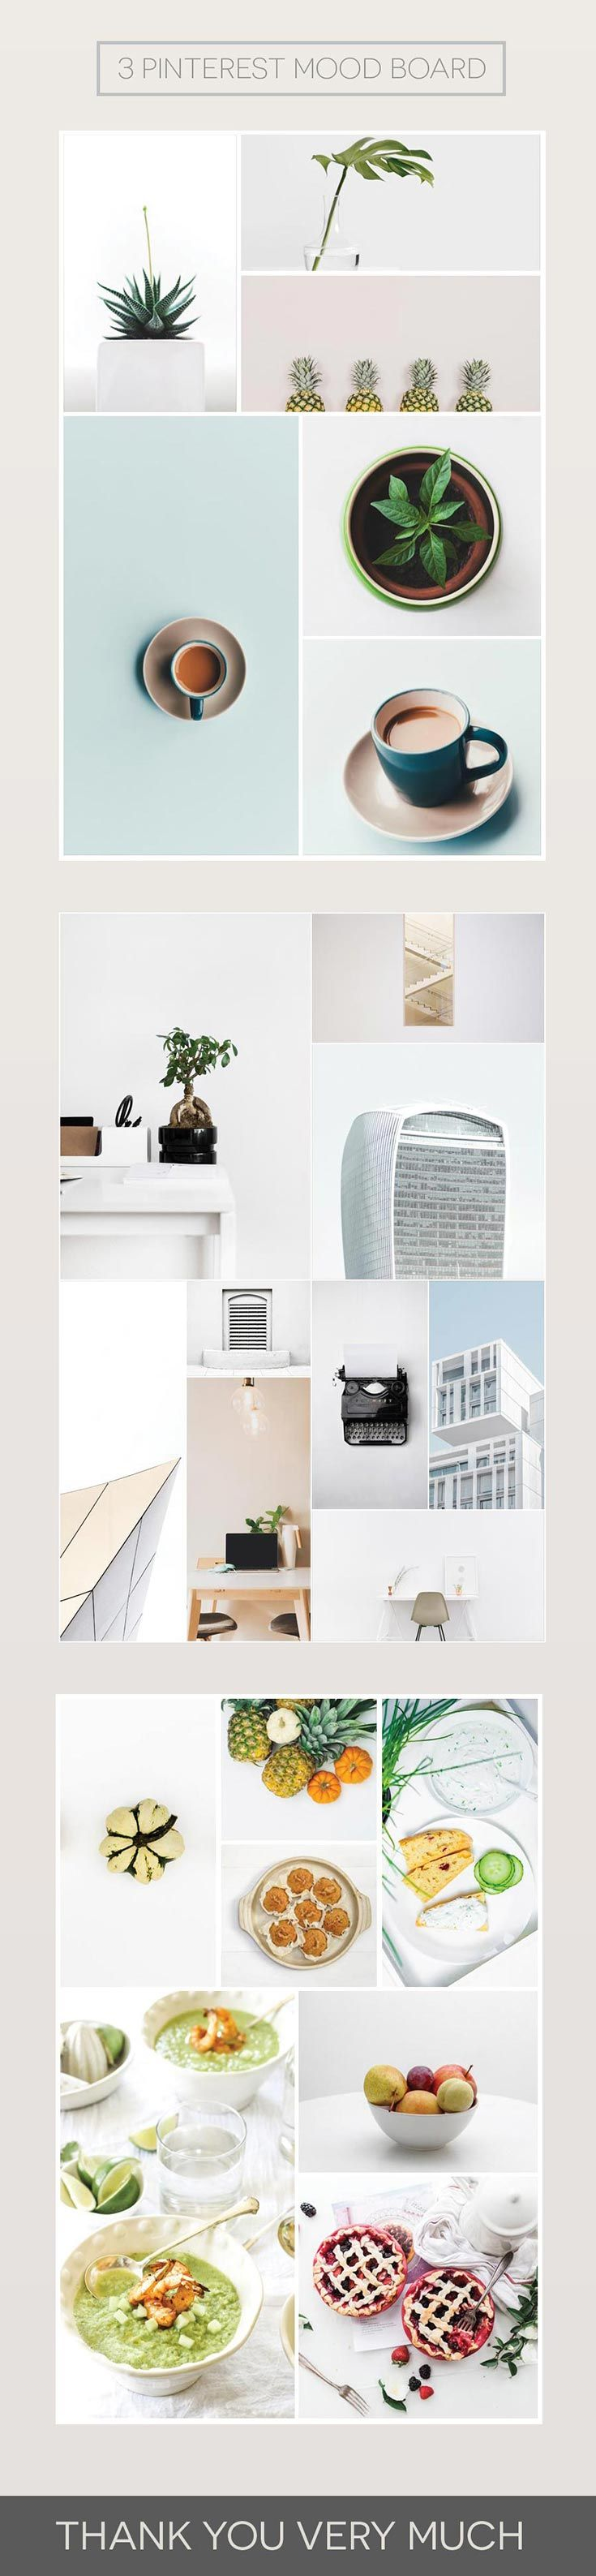 Poster design golden ratio - Free Pinterest Mood Board Is A Freebie Pack Containing 3 Mood Board Templates Via